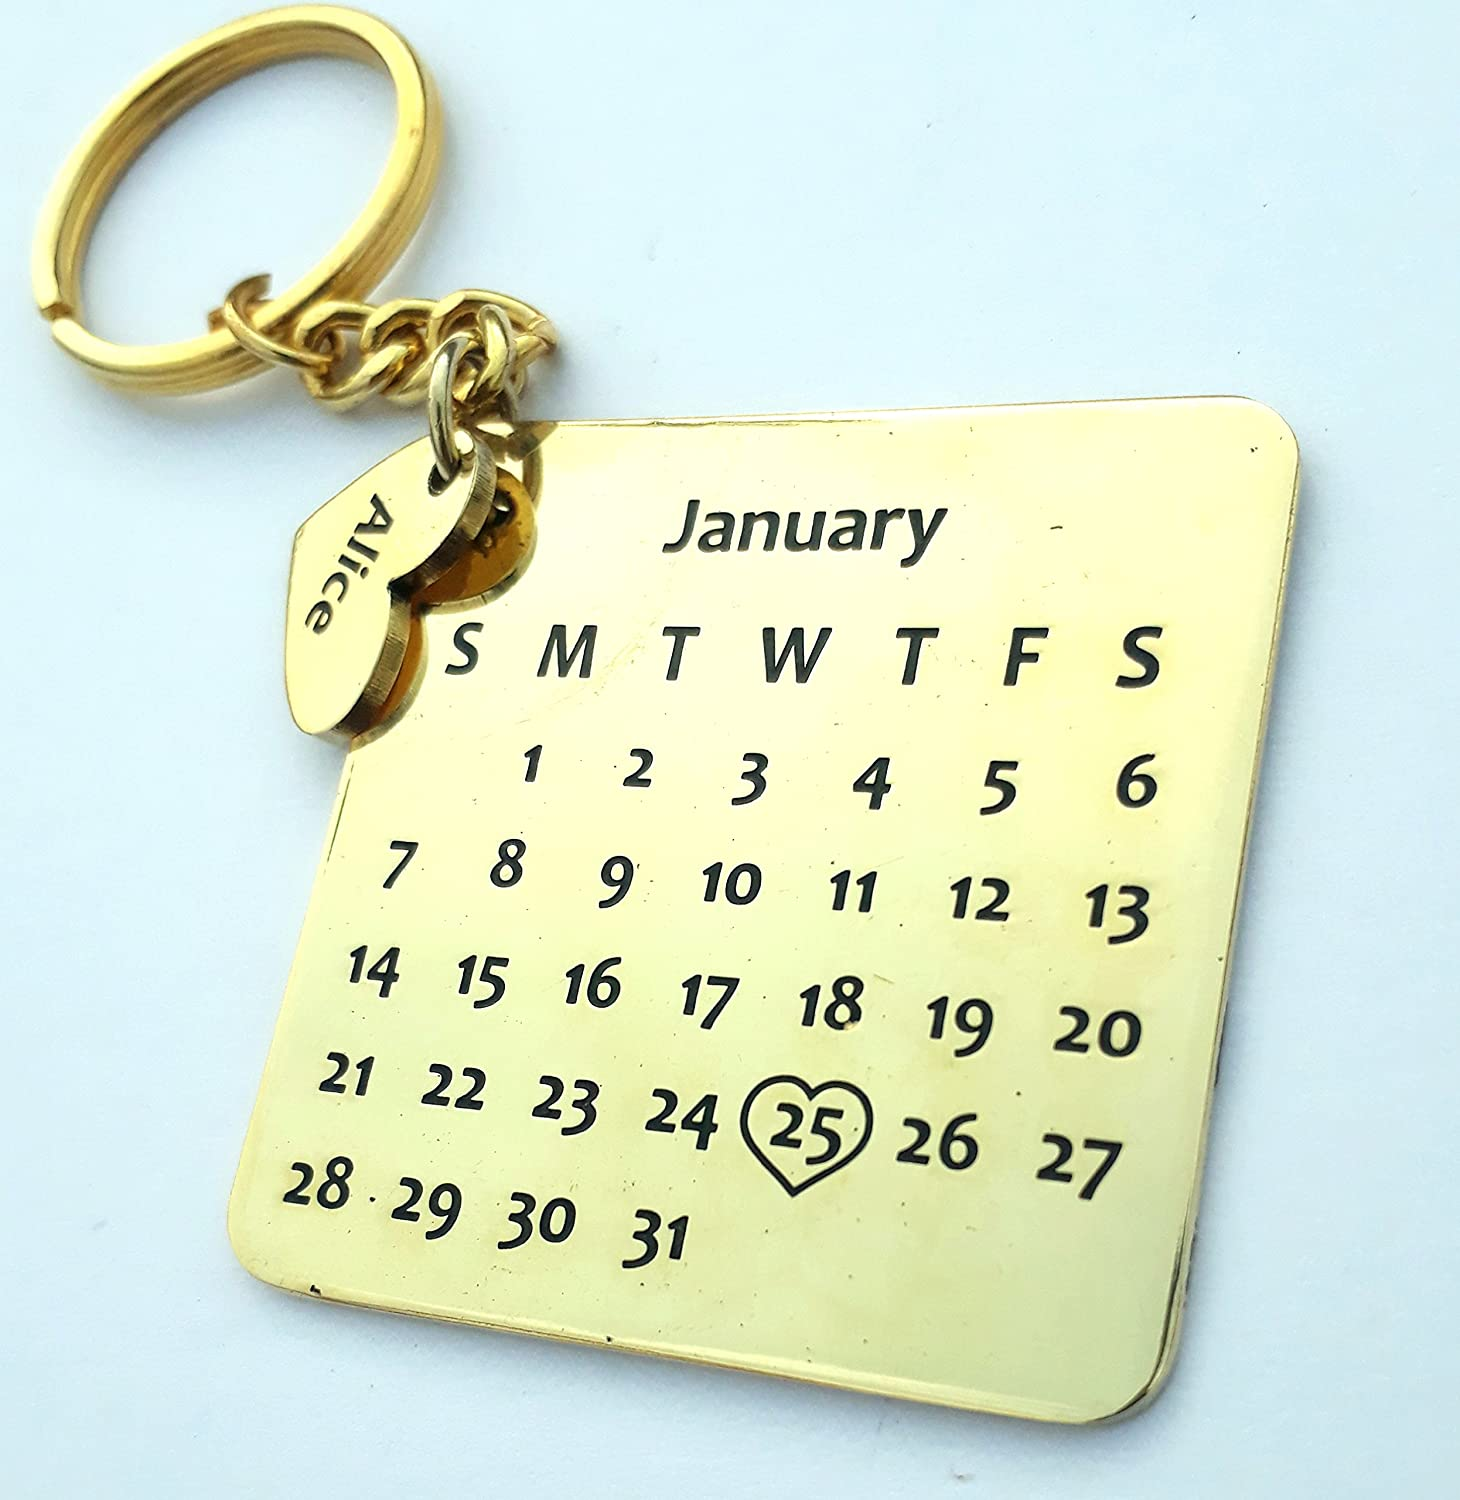 bab92f98c6c38 Smart Galleria Birthday Gift Personalized Calendar Key Chain with Name and  D.O.B on Metal